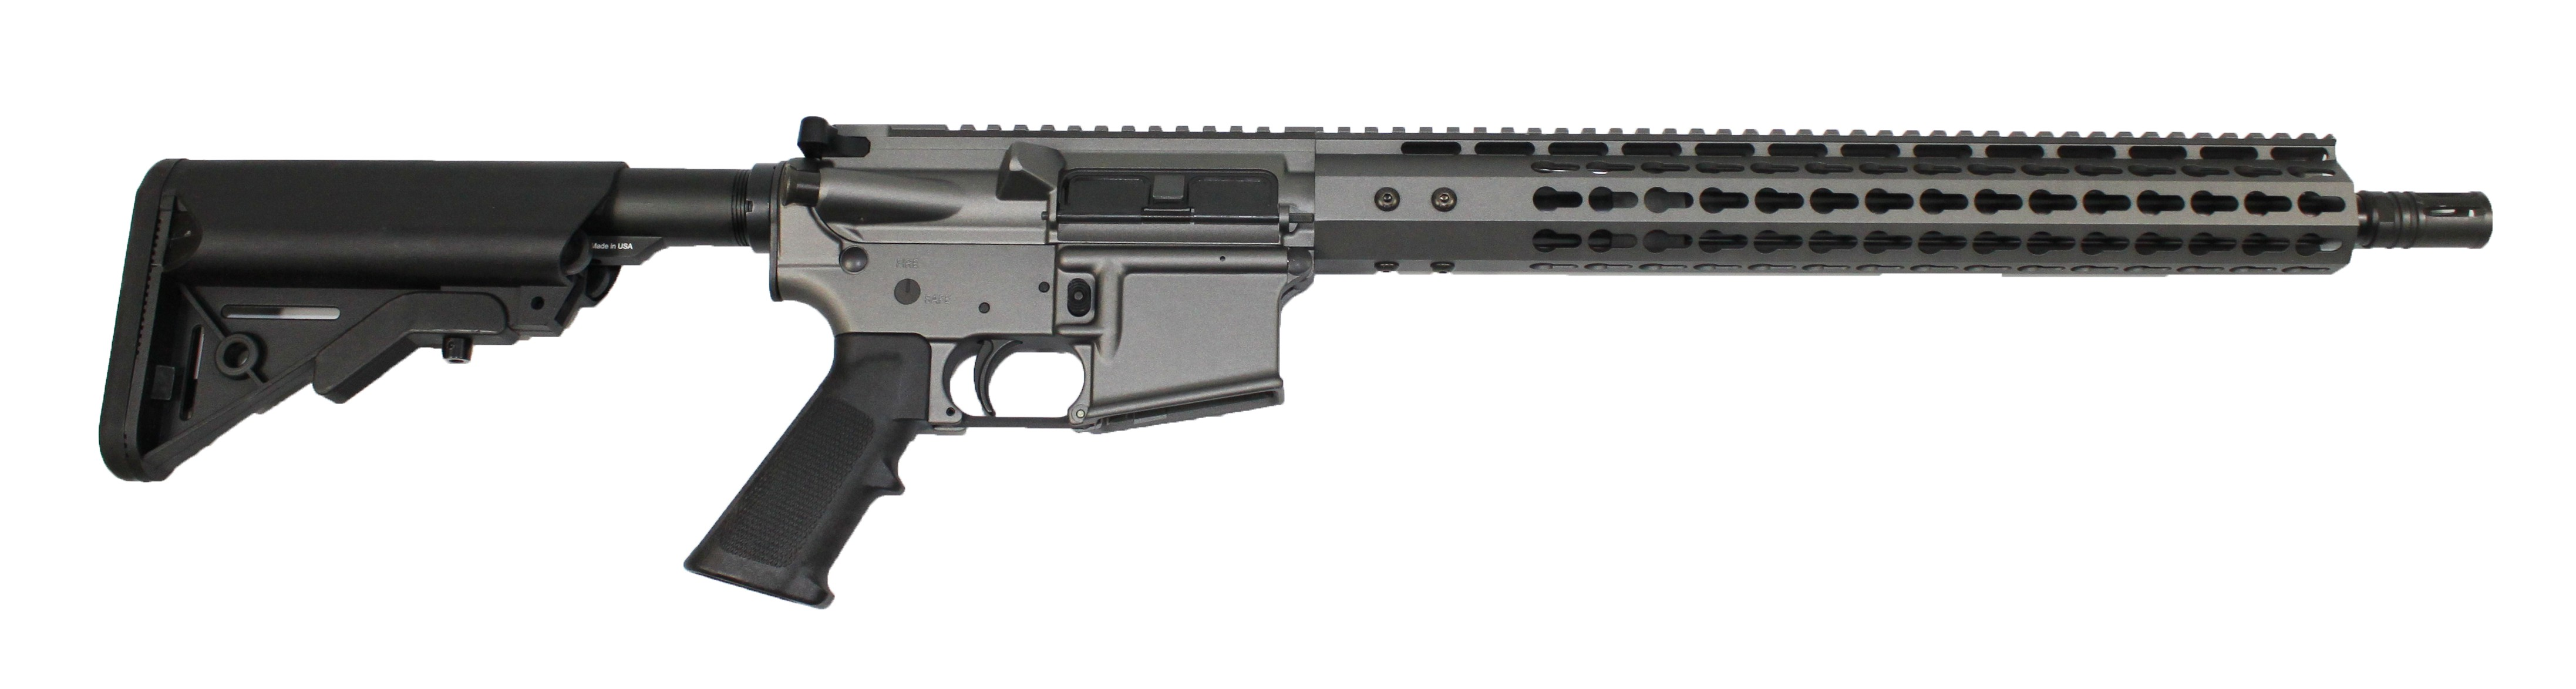 ar 15 complete rifle cbc industries limited edition tungsten rifle 300aac sopmod buttstock